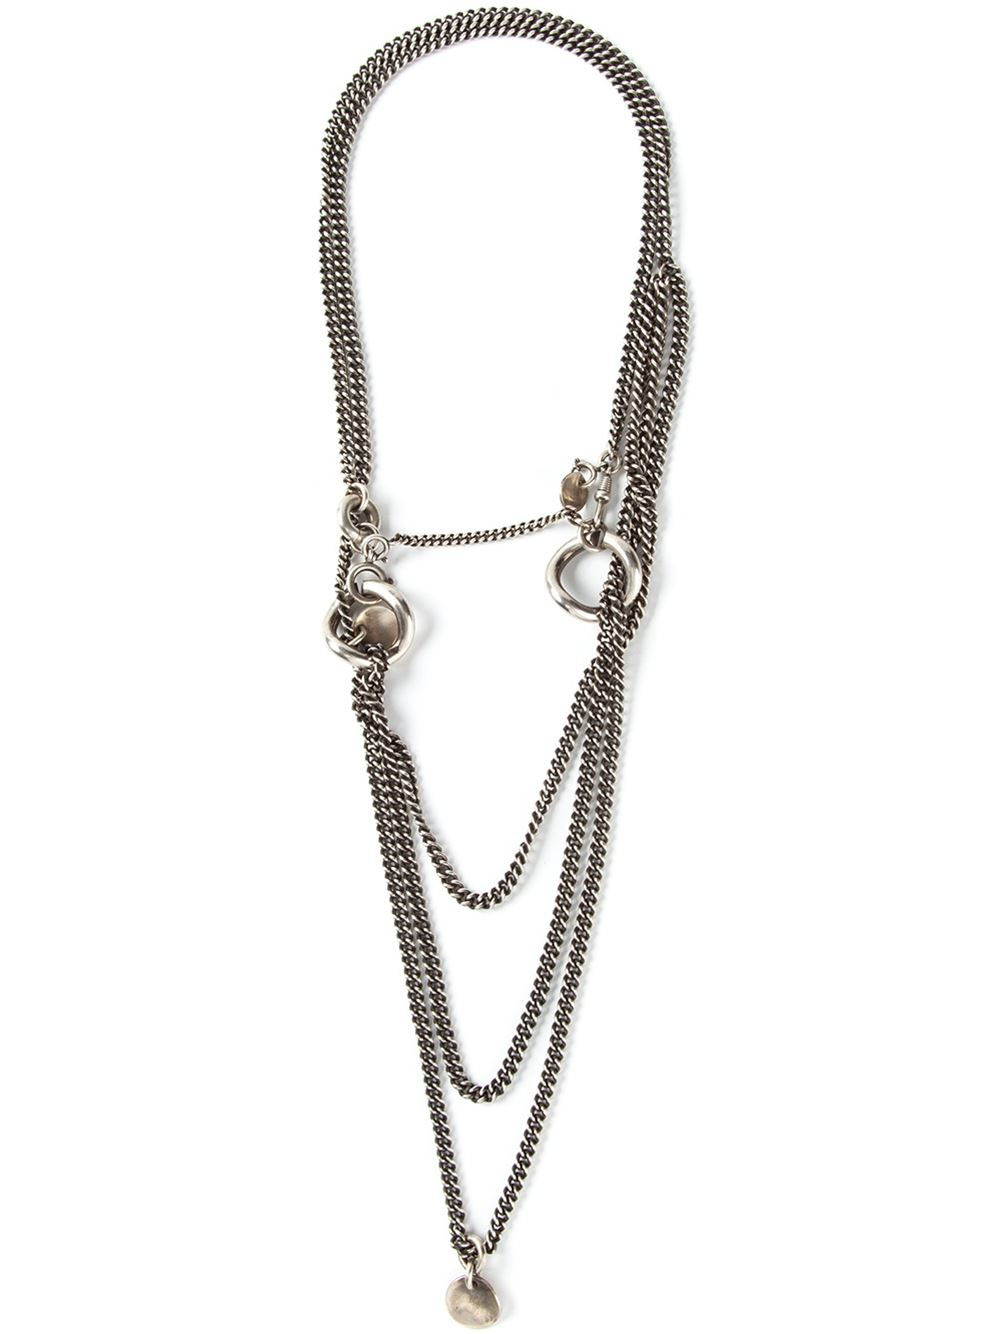 Ann Demeulemeester multi chain necklace - Metallic